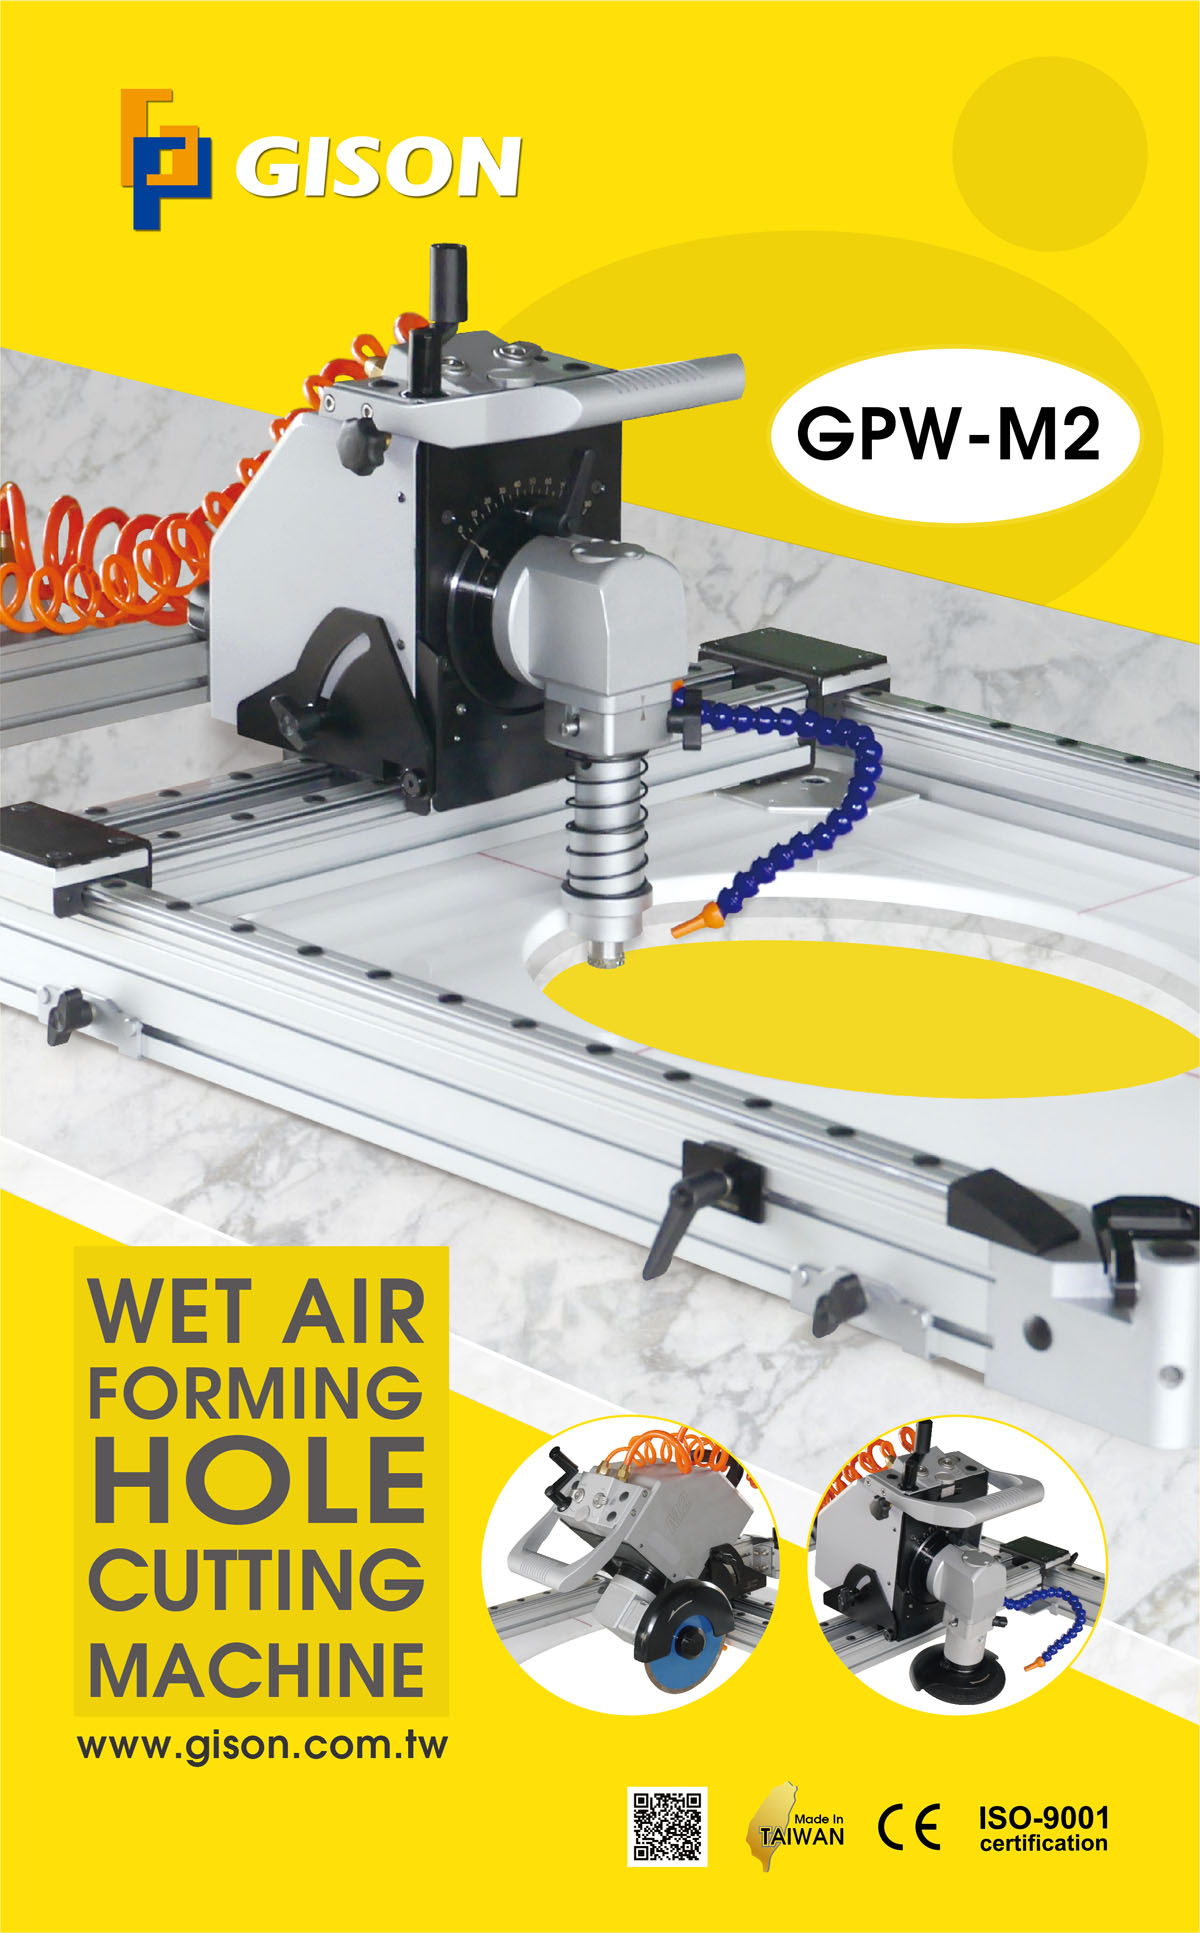 Portable Wet Air Stone Hole Cutting Amp Forming Milling